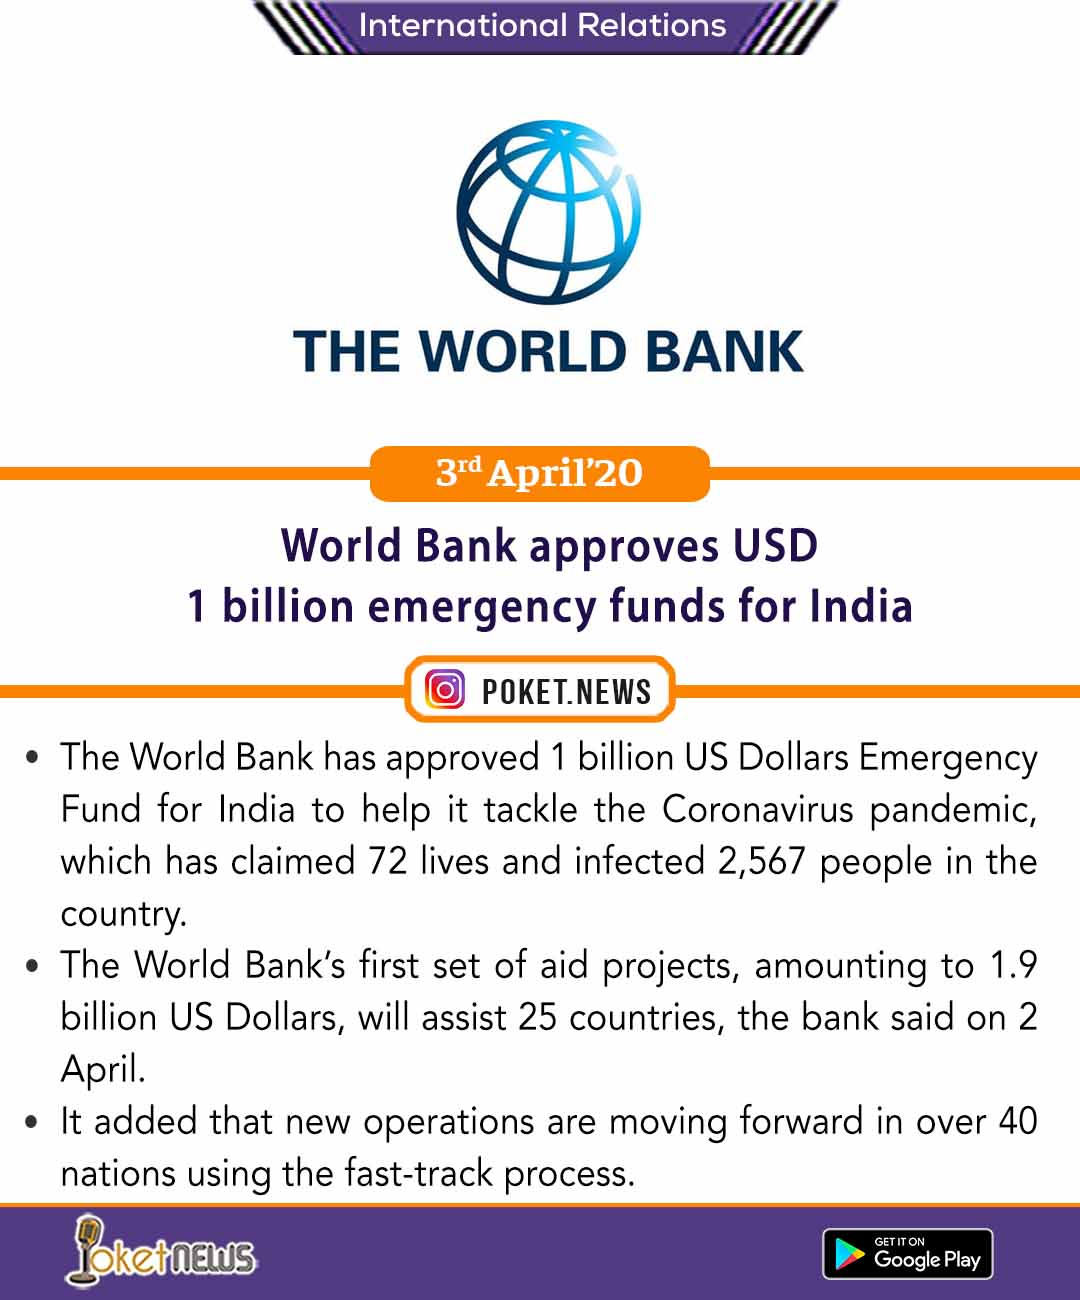 World Bank approves USD 1 billion emergency funds for India